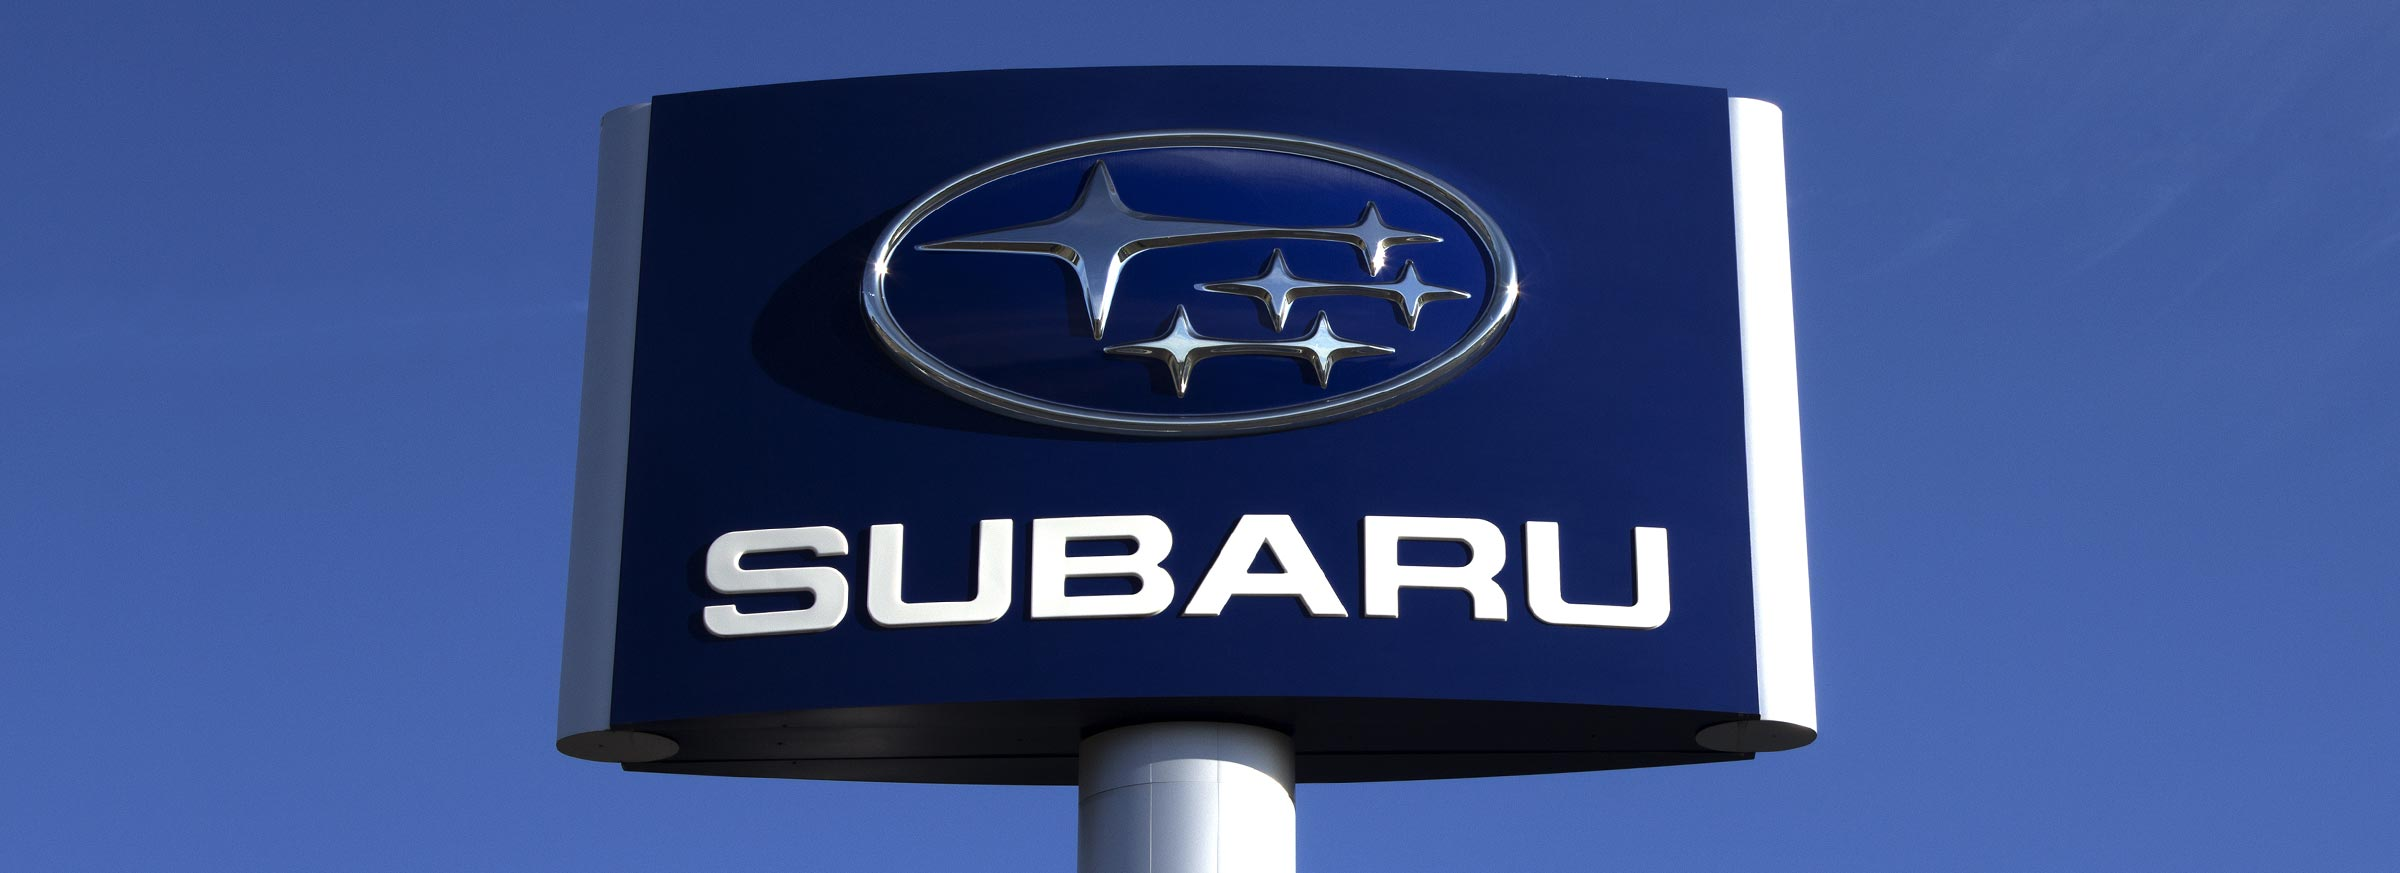 Subaru dealer serving burbank galpin subaru for Subaru motors finance address